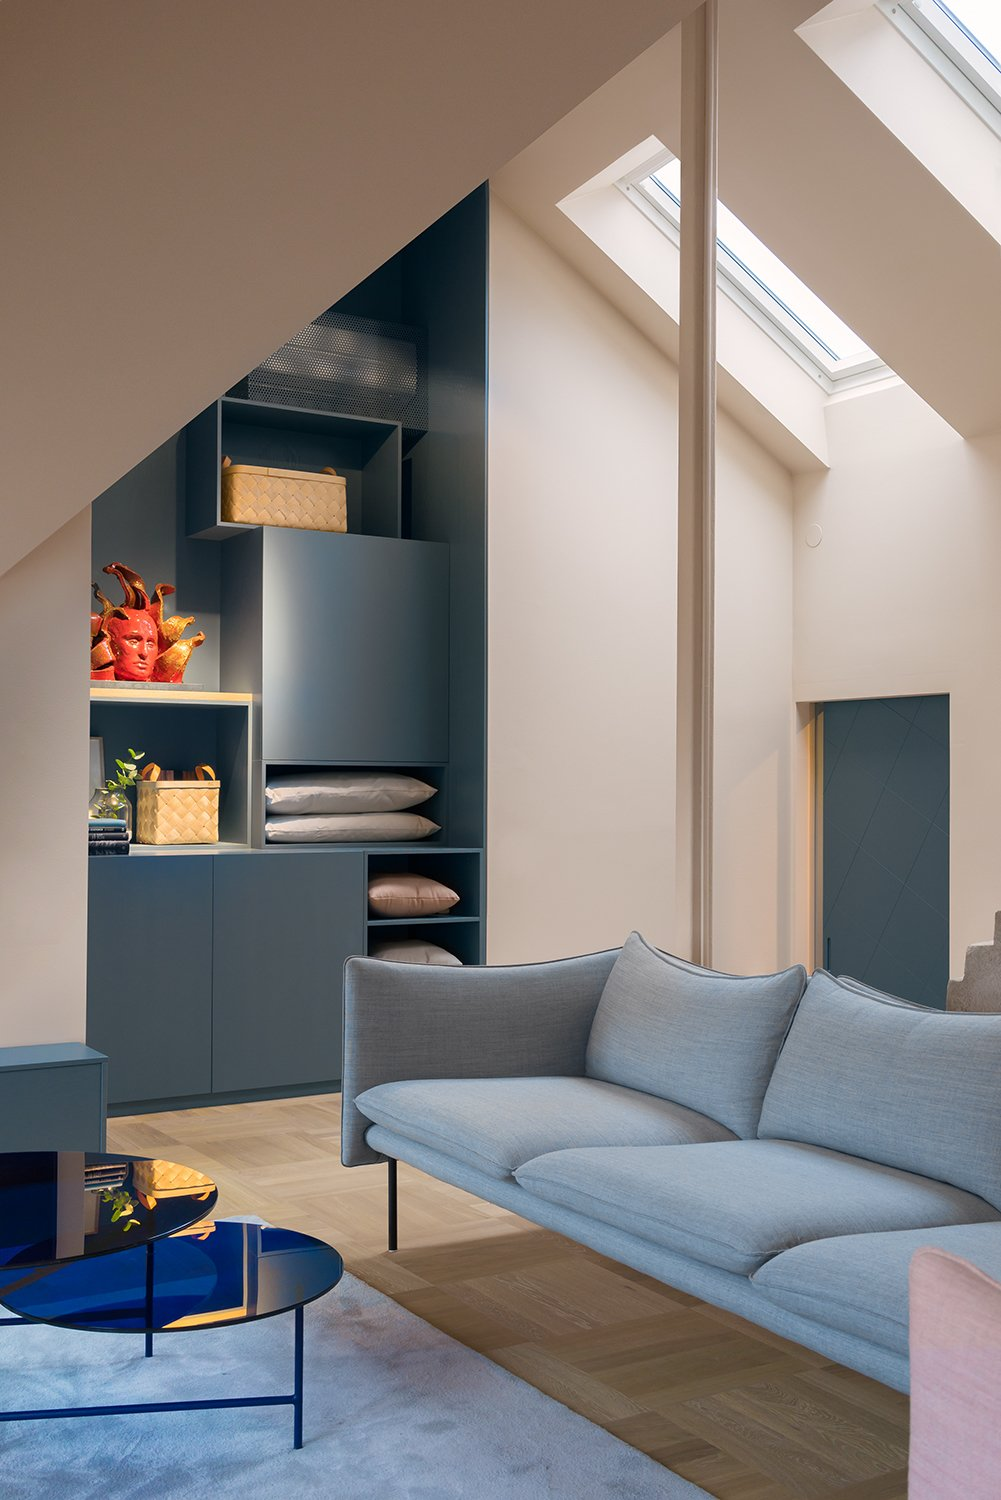 The storage unit continues in the living room, marked by a Tiki sofa by local design company Fogia. NOTE designed the stool as well as the coffee table, which was created for the French brand La Chance as part of a series called Zorro.  Loft from There's Not a Single White Surface in This Comfy Stockholm Loft